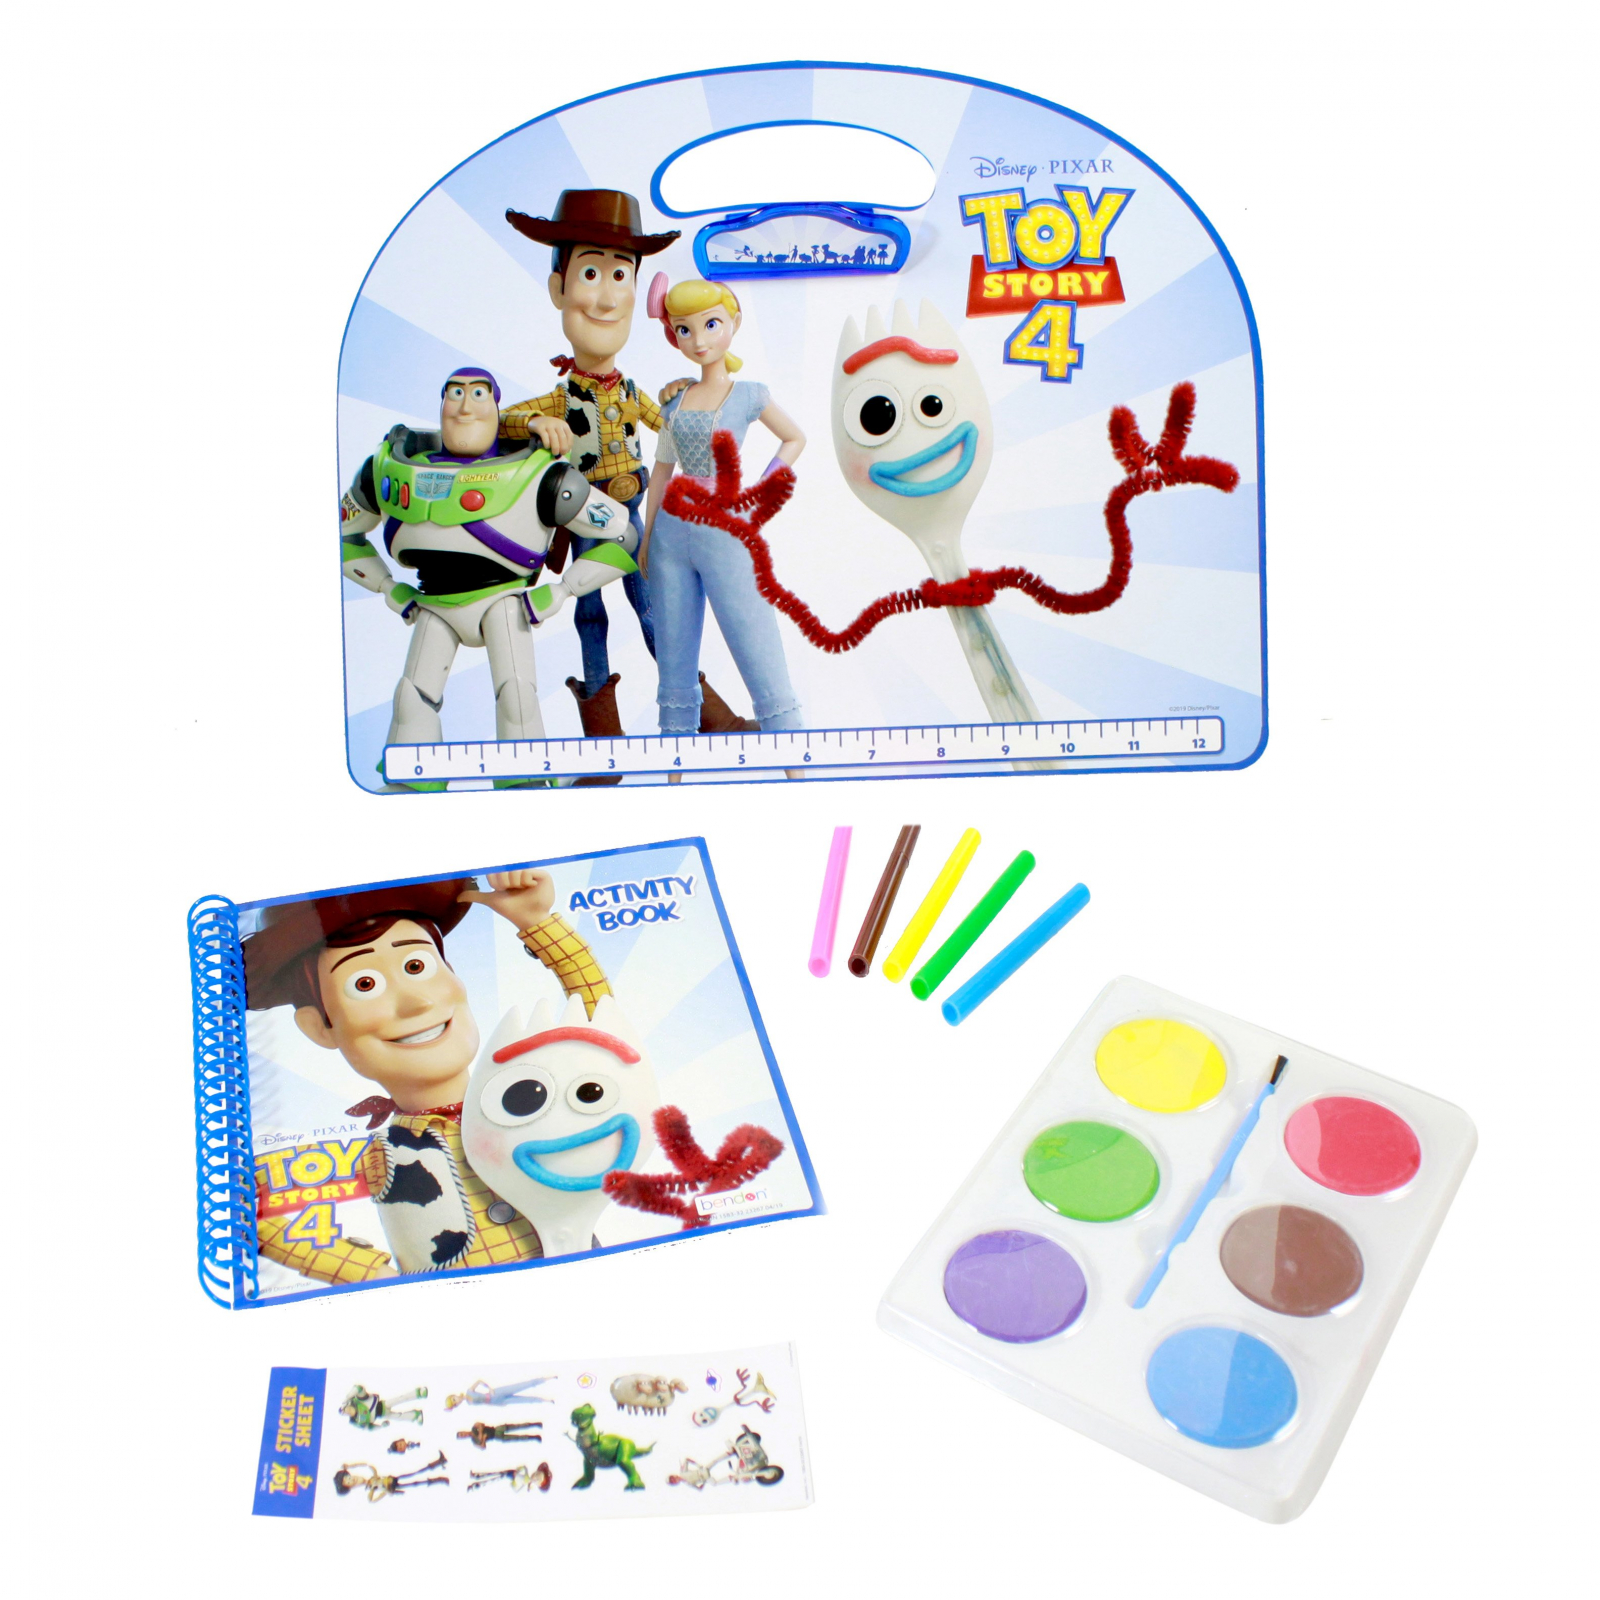 Disney Pixar Toy Story 4 Kids Activity Gift Set 12 Pieces